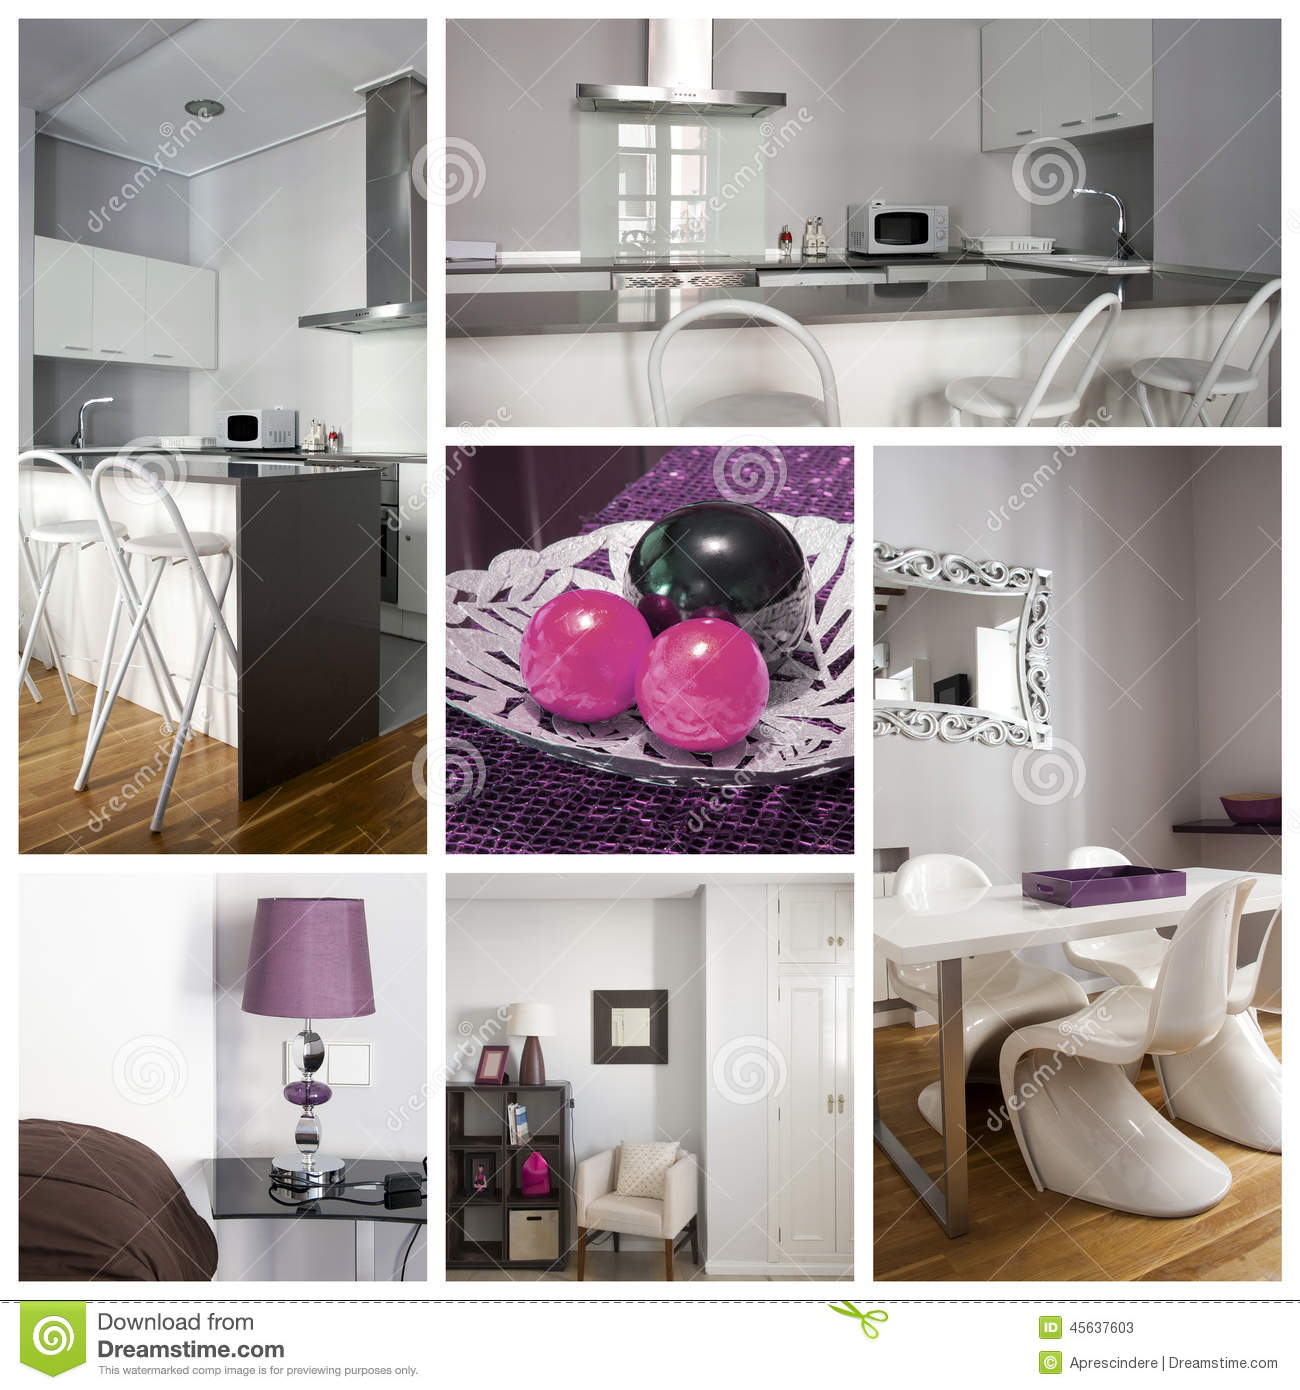 Bedroom Door Collage Simple Bedrooms For Girls Pics Of Bedroom Decorating Ideas Bedroom Furniture Design Catalogue: Interior Home Collage Stock Image. Image Of Contemporary